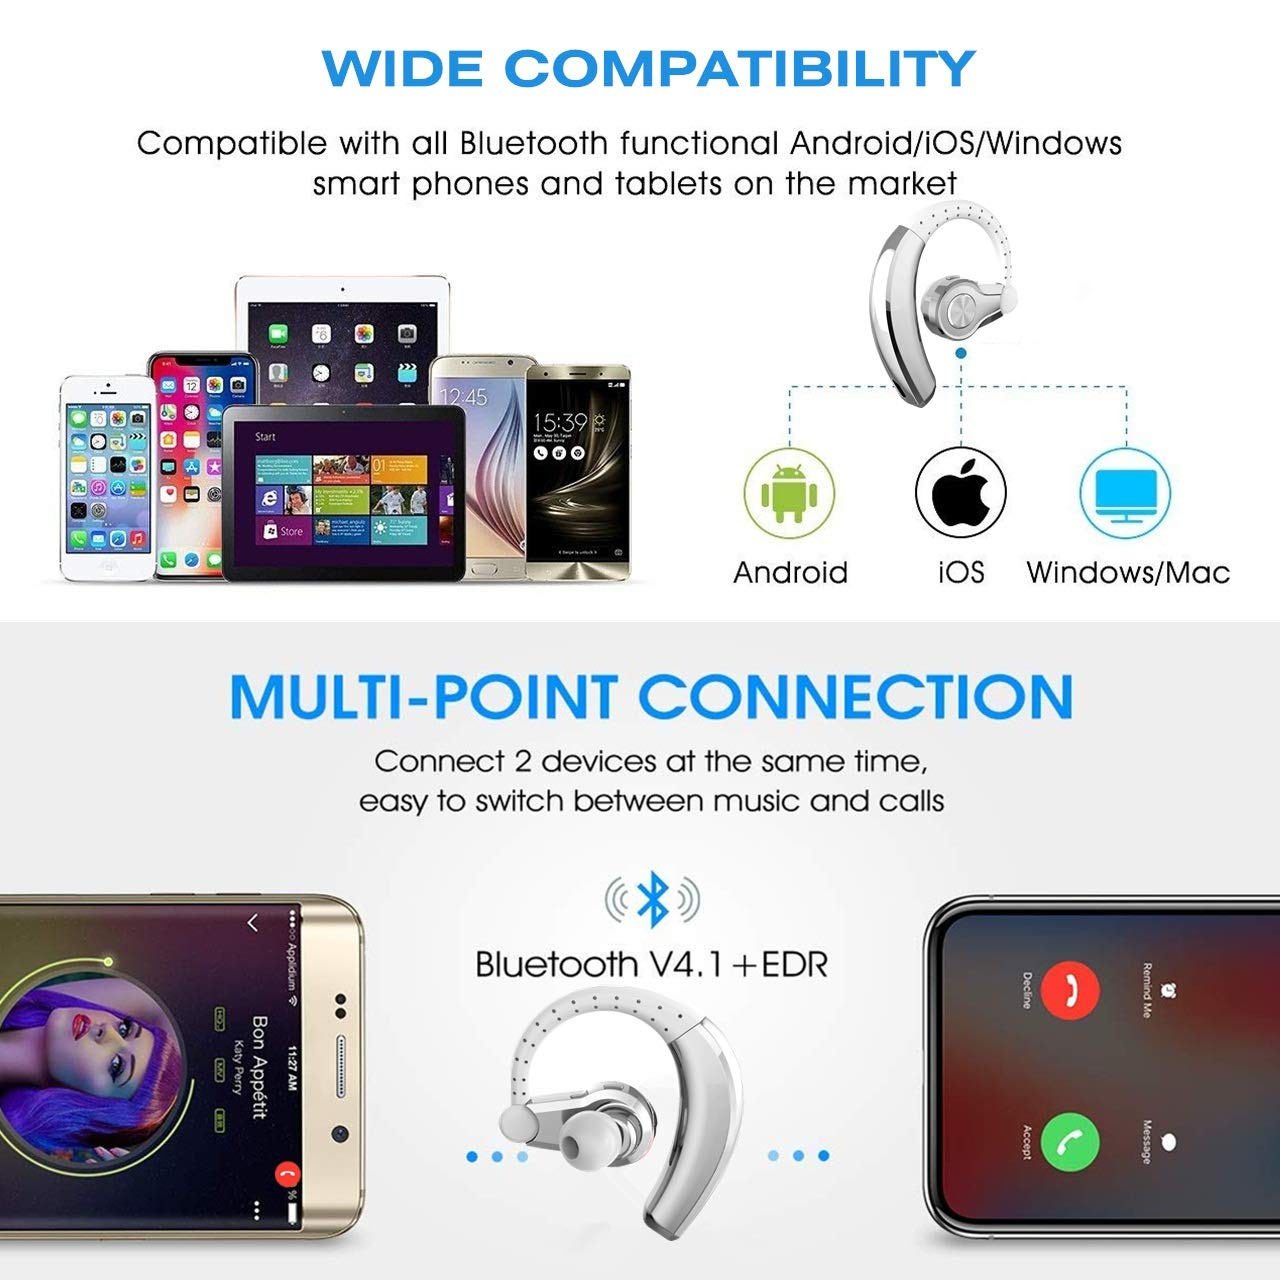 PONYBRO Wireless Headset,Lightweight&Comfortable,HD Sound Wireless Earbuds with Mic,8-Hours Playtime Cell Phone Earpiece,Hands Free Wireless Headphones for Cell Phones,PC,Tablet. Silvery